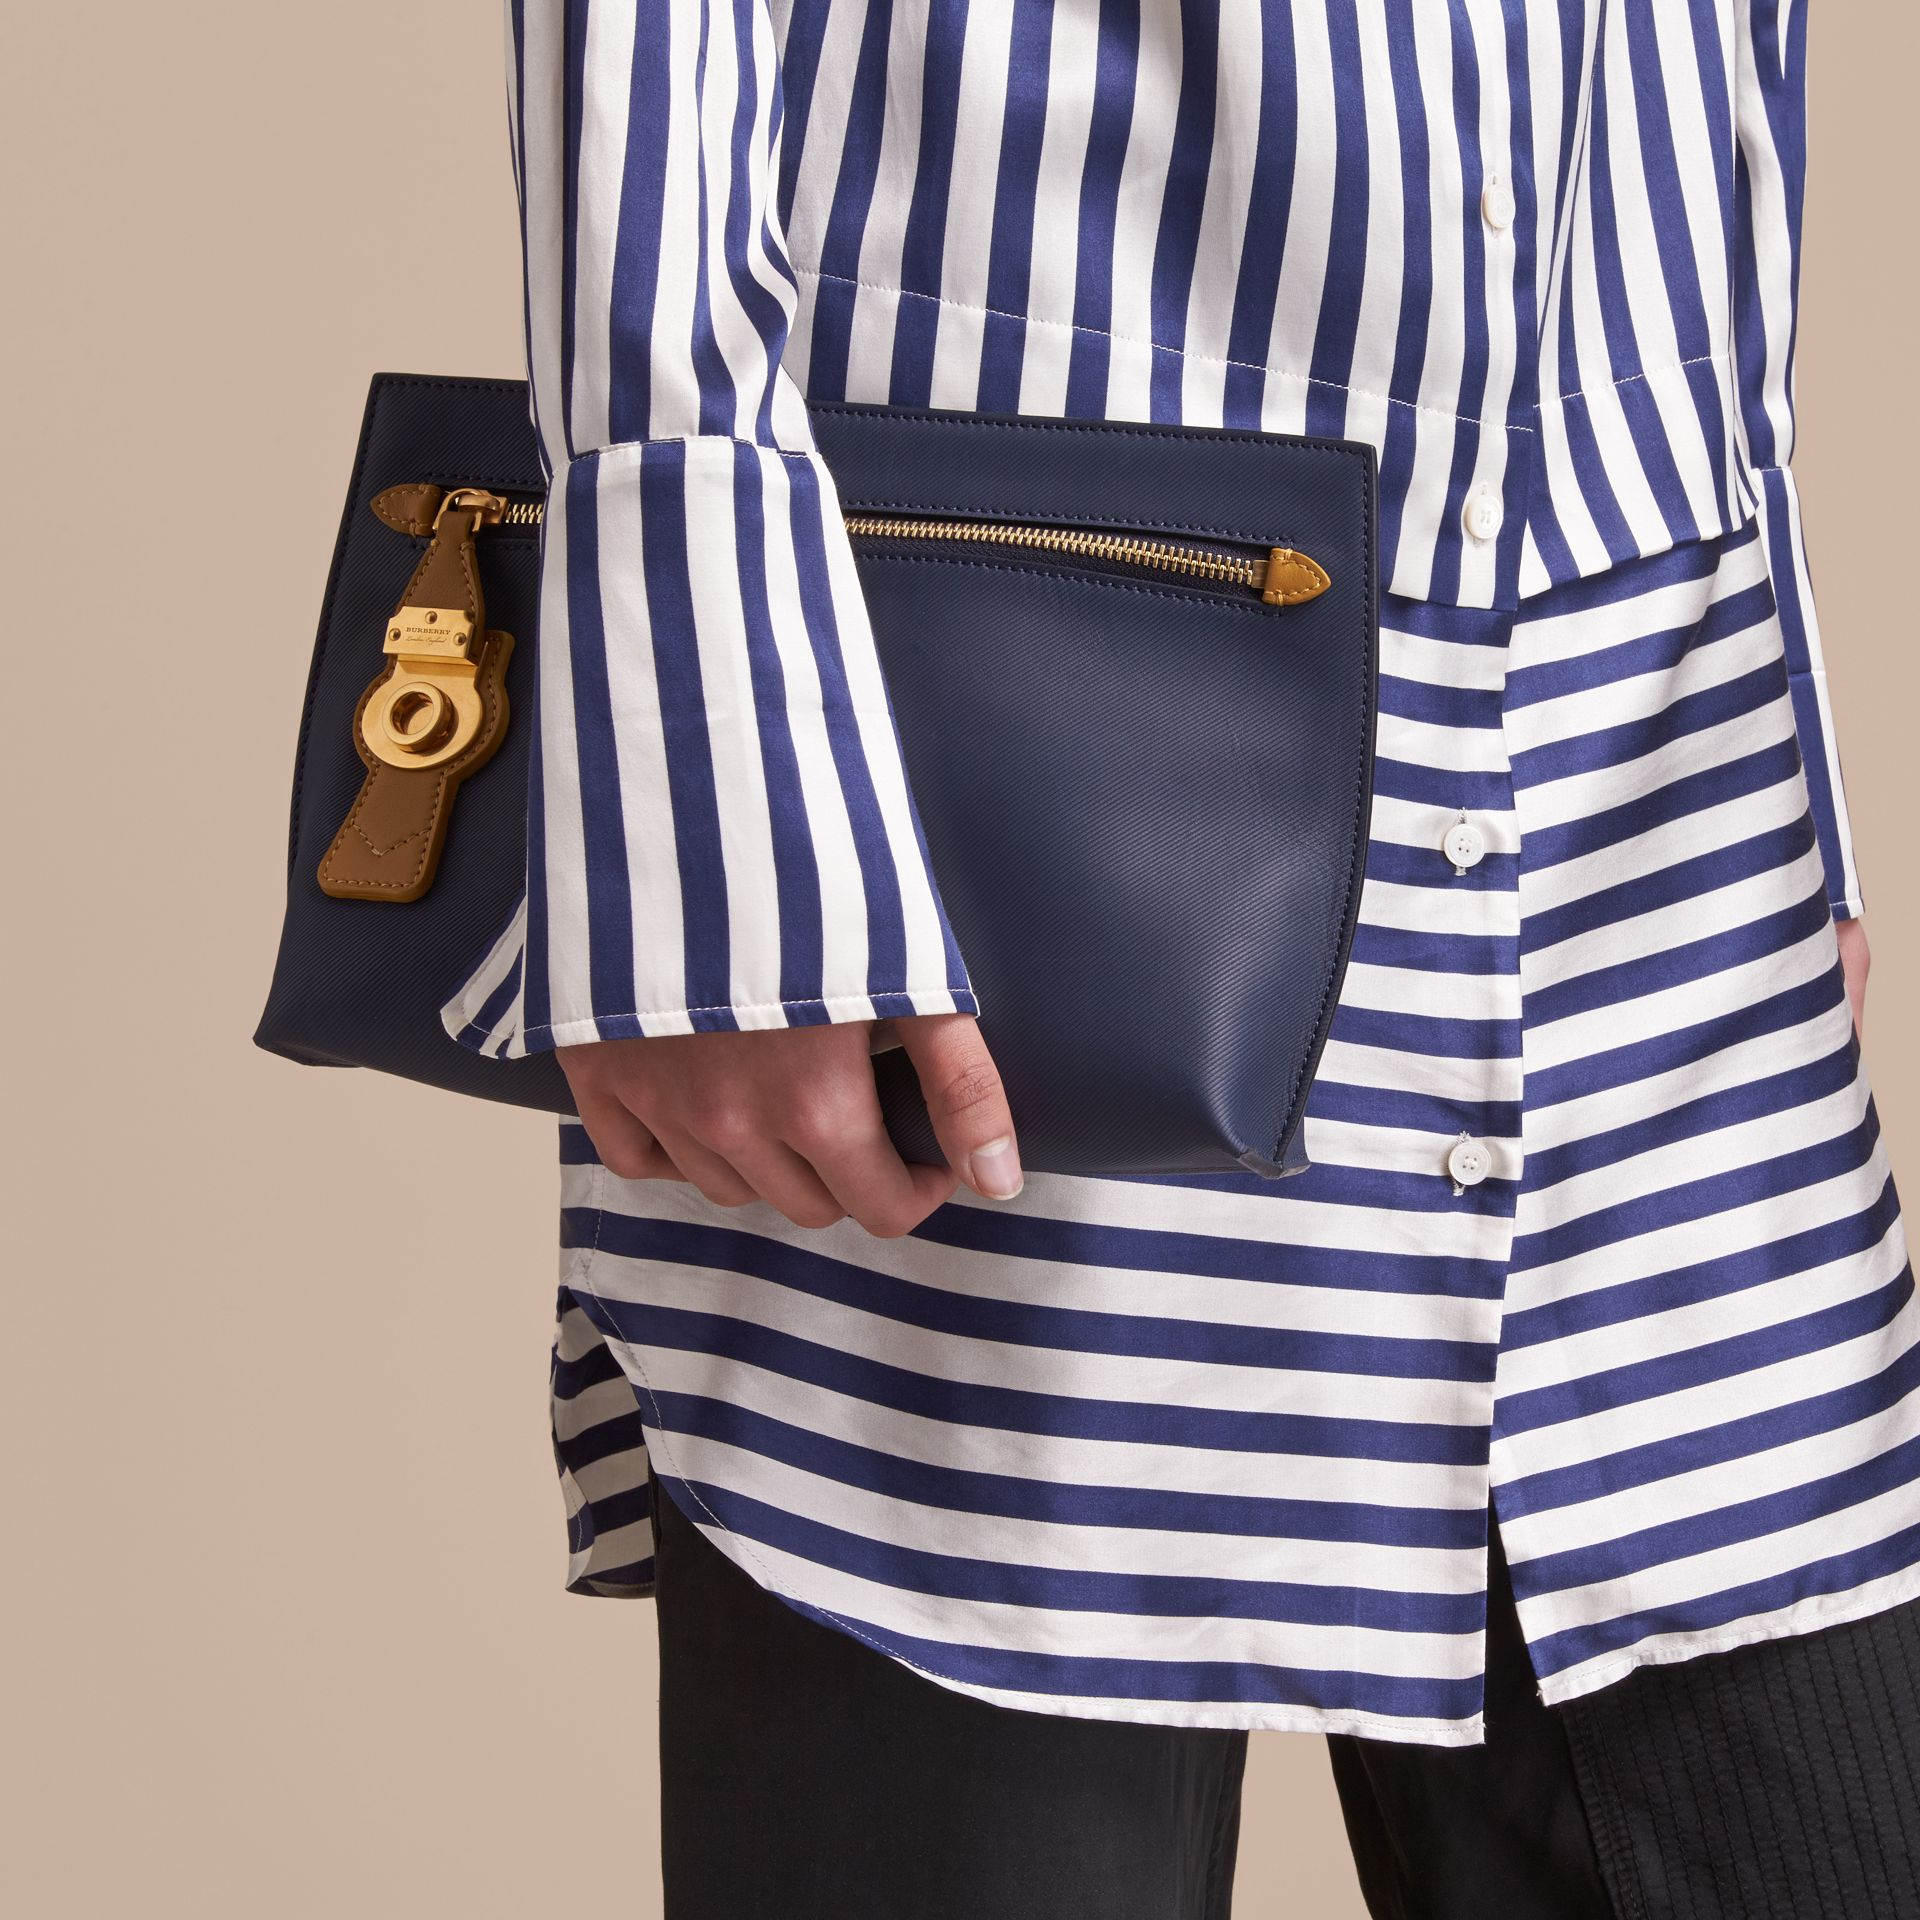 Two-tone Trench Leather Wristlet Pouch in Ink Blue/ochre Yellow - Women | Burberry - gallery image 3